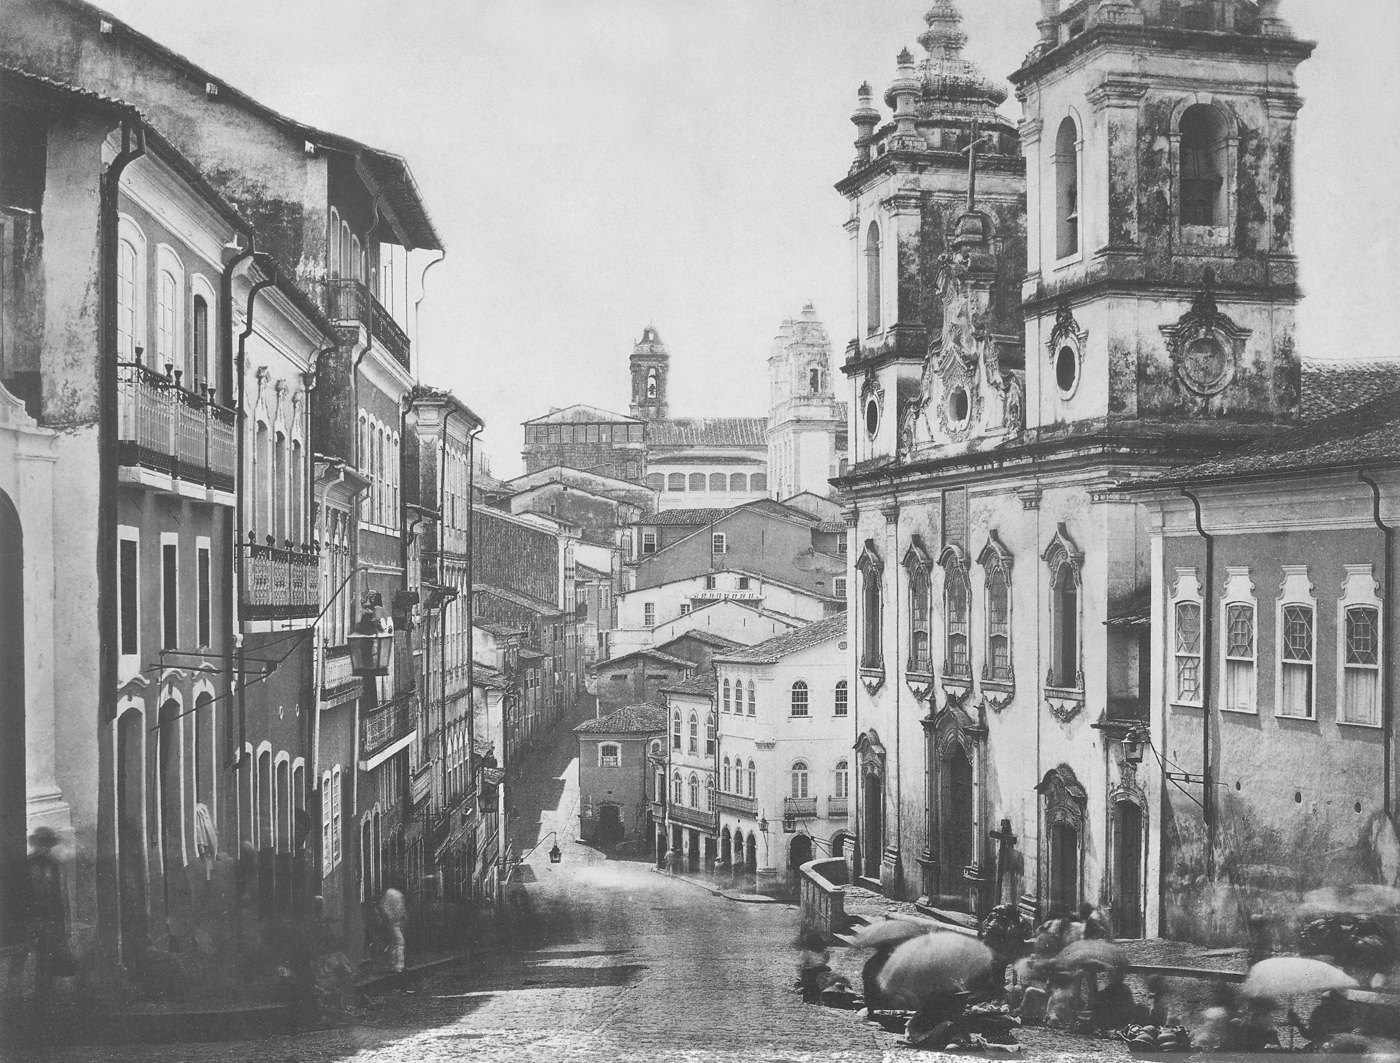 The Pelourinho in Salvador da Bahia photographed by Benjamin Mulock in 1859. At right, the Rosário church, built by Africans in the 18th century to house an important black confraternity, Nossa Senhora do Rosário dos Pretos. See the  Guia Geográfico